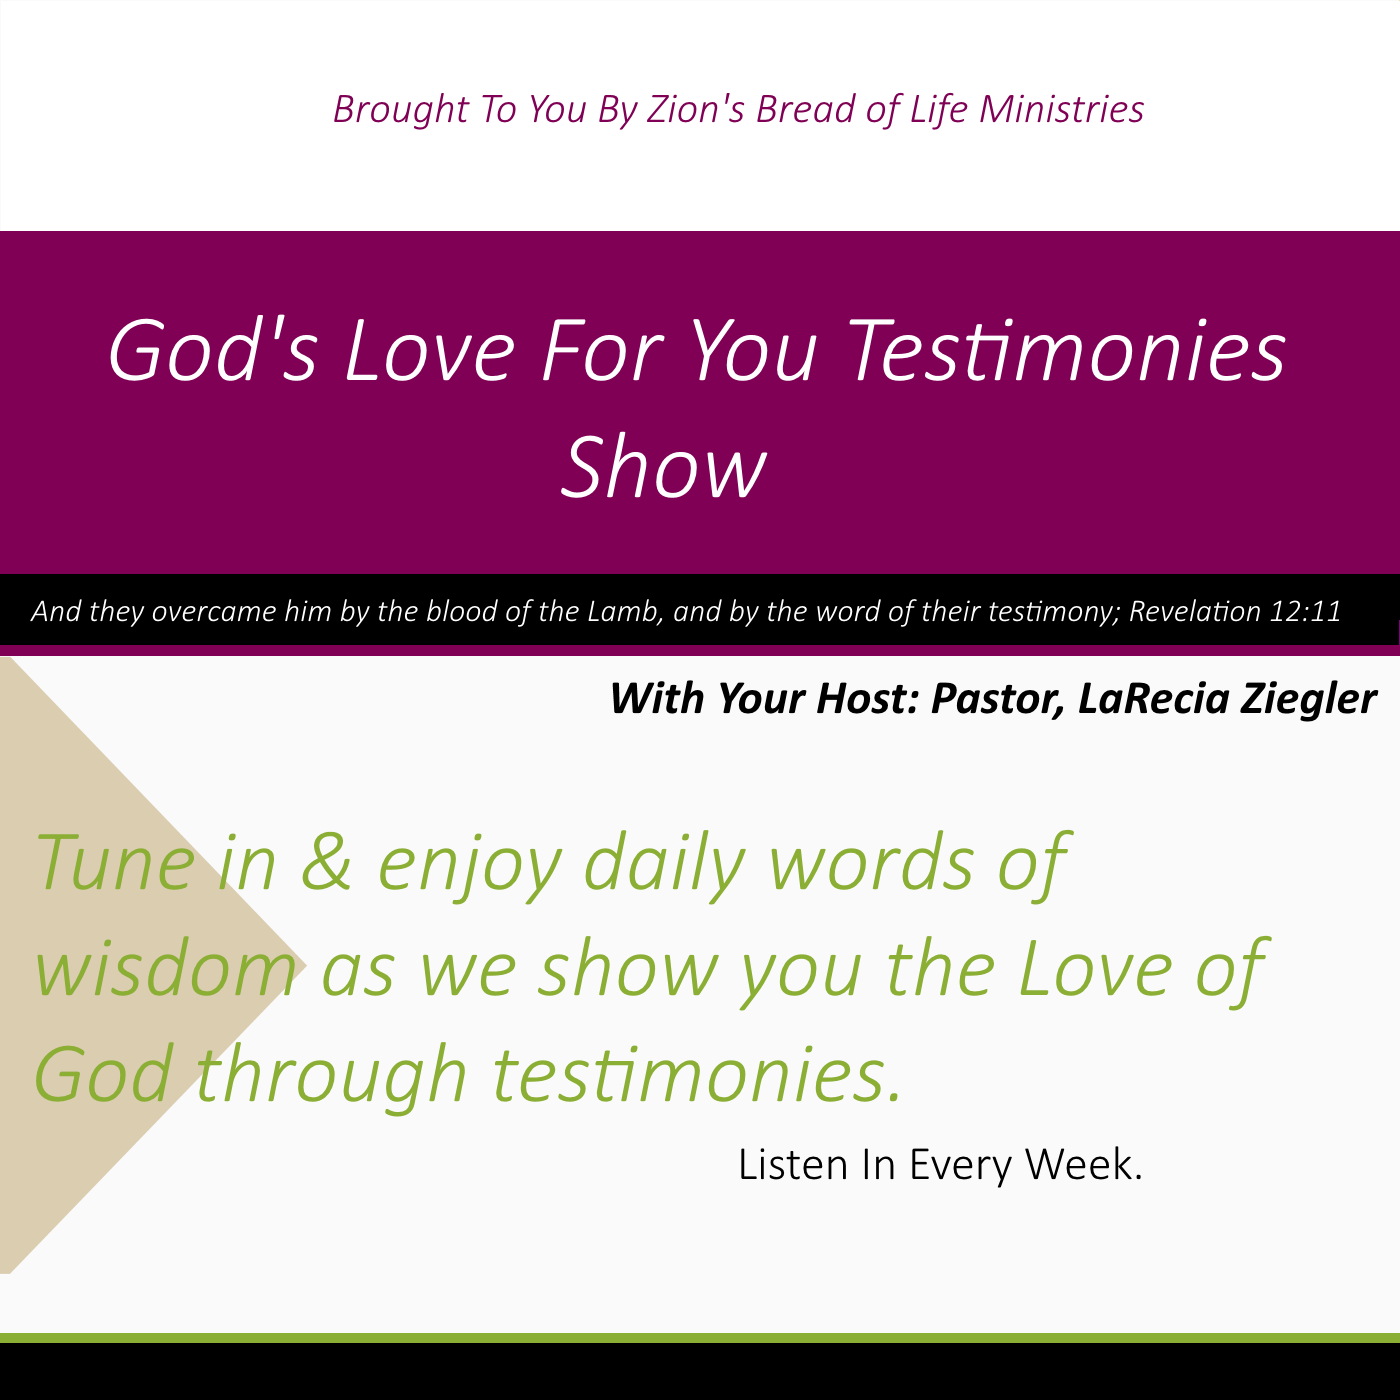 Zions Bread of Life Ministries